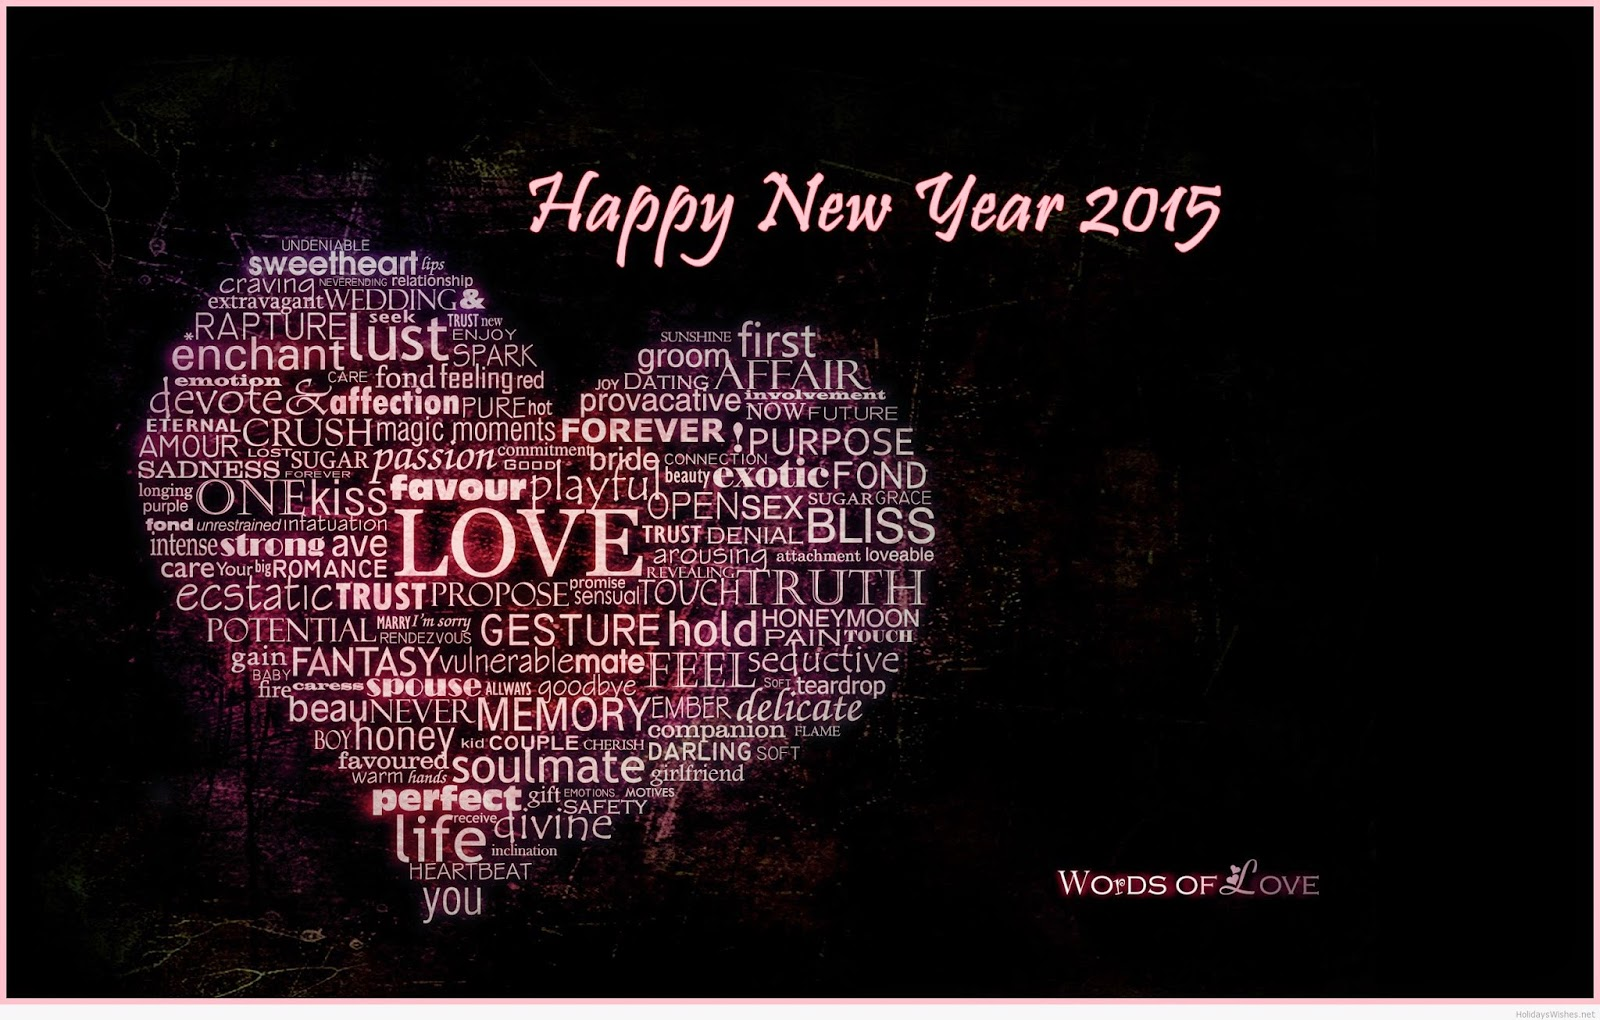 New Year Wallpaper Wishes In Hd 2015 Happy New Year 2015 Wallpaper